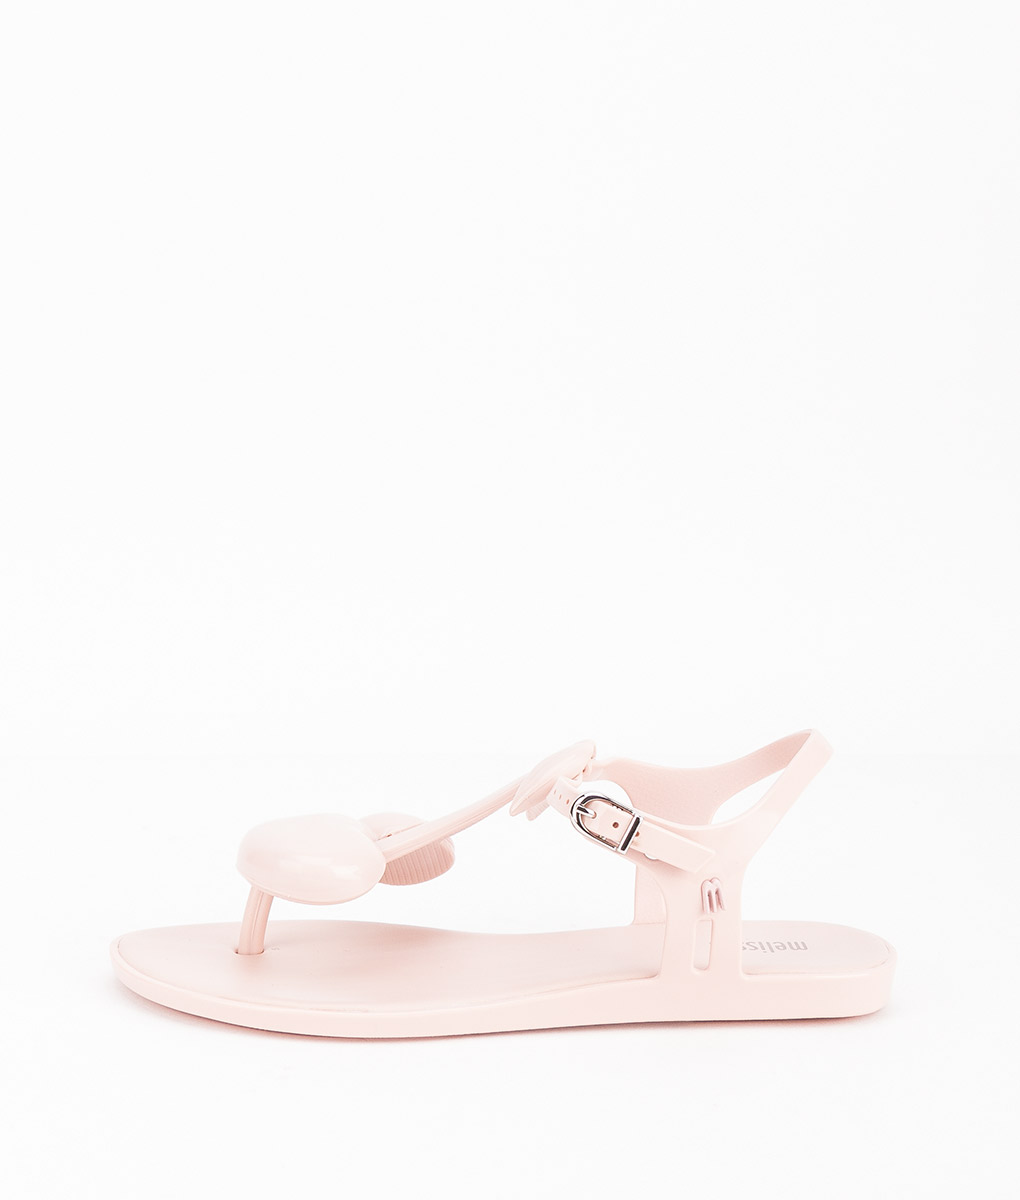 MELISSA Woman Sandals 32301 SOLAR IV, Pink 66.99